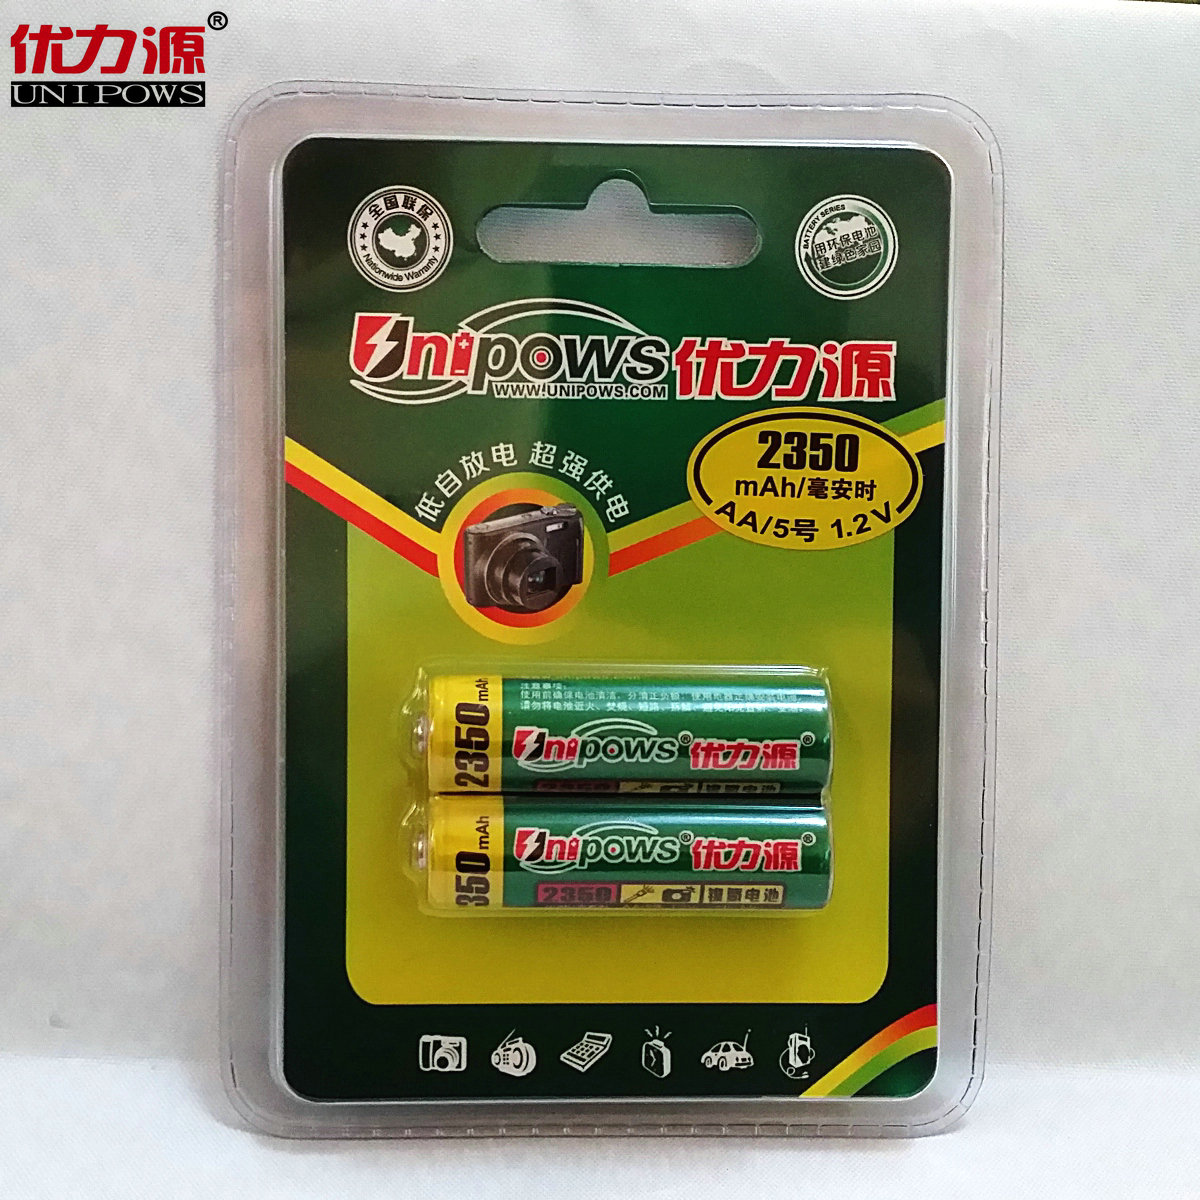 Excellent source of 5 aa2350mah polaroid rechargeable batteries on 5 rechargeable battery wireless mouse battery